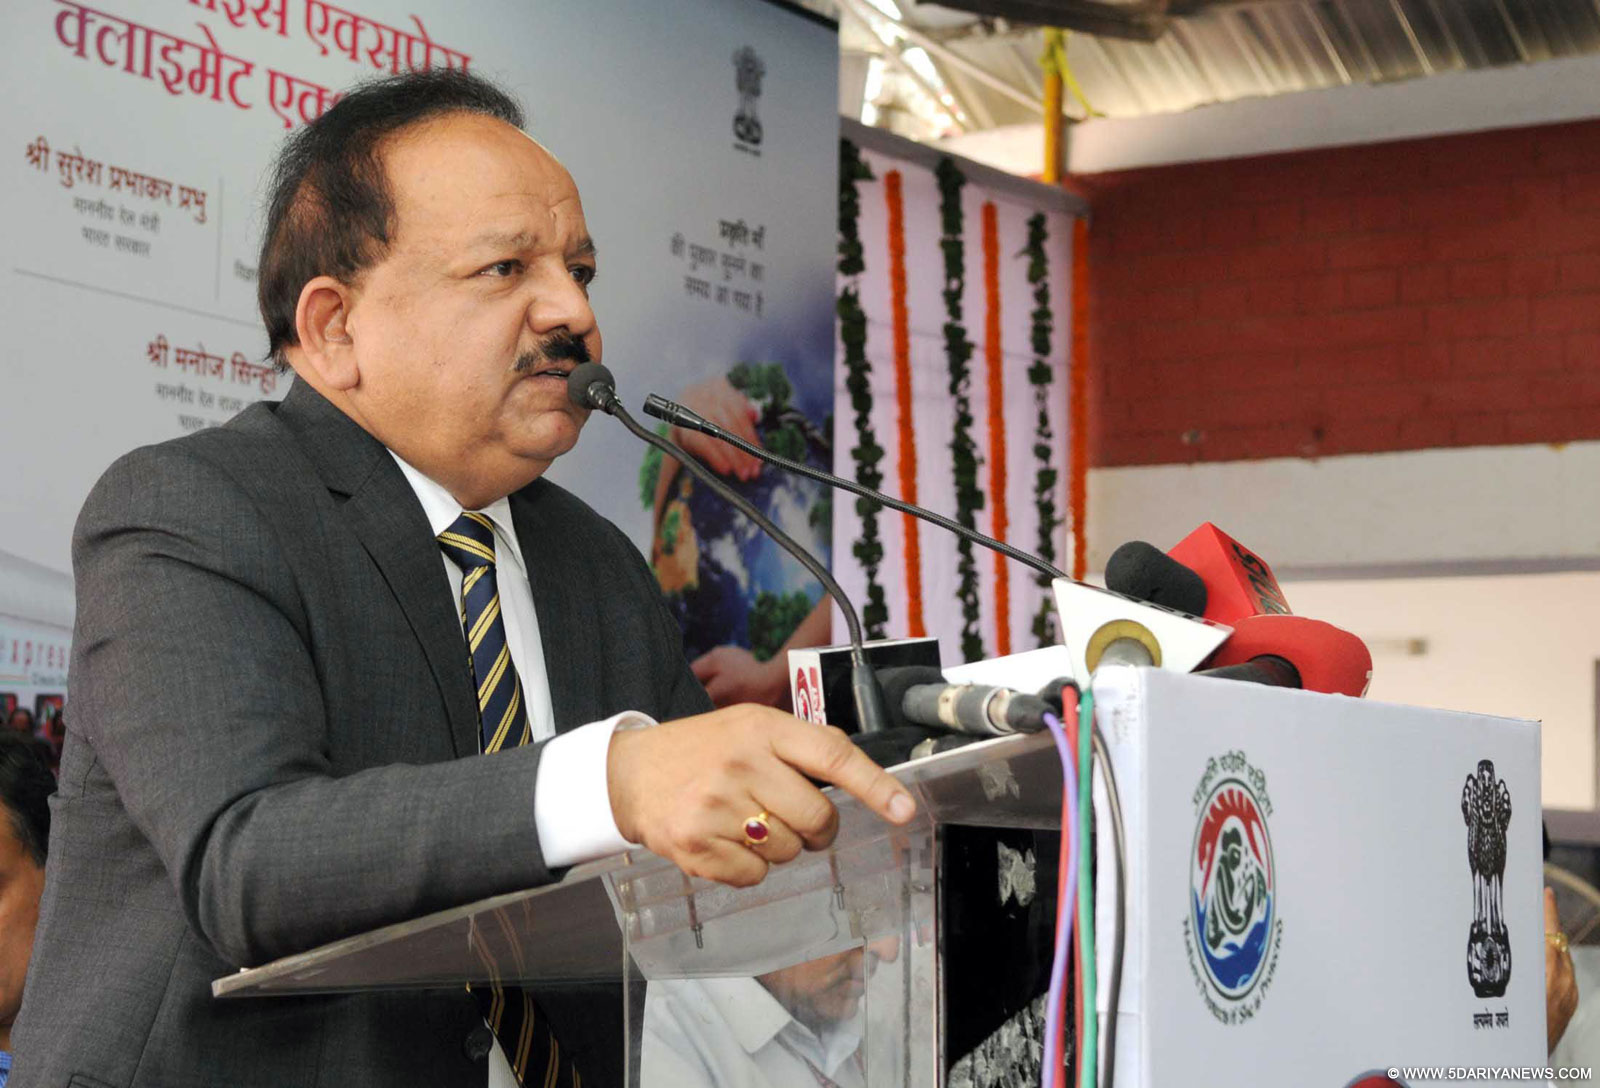 Uploads/2015/10/15/en-news-08275730-Dr.-Harsh-Vardhan-addressing-at-the-flag.jpg